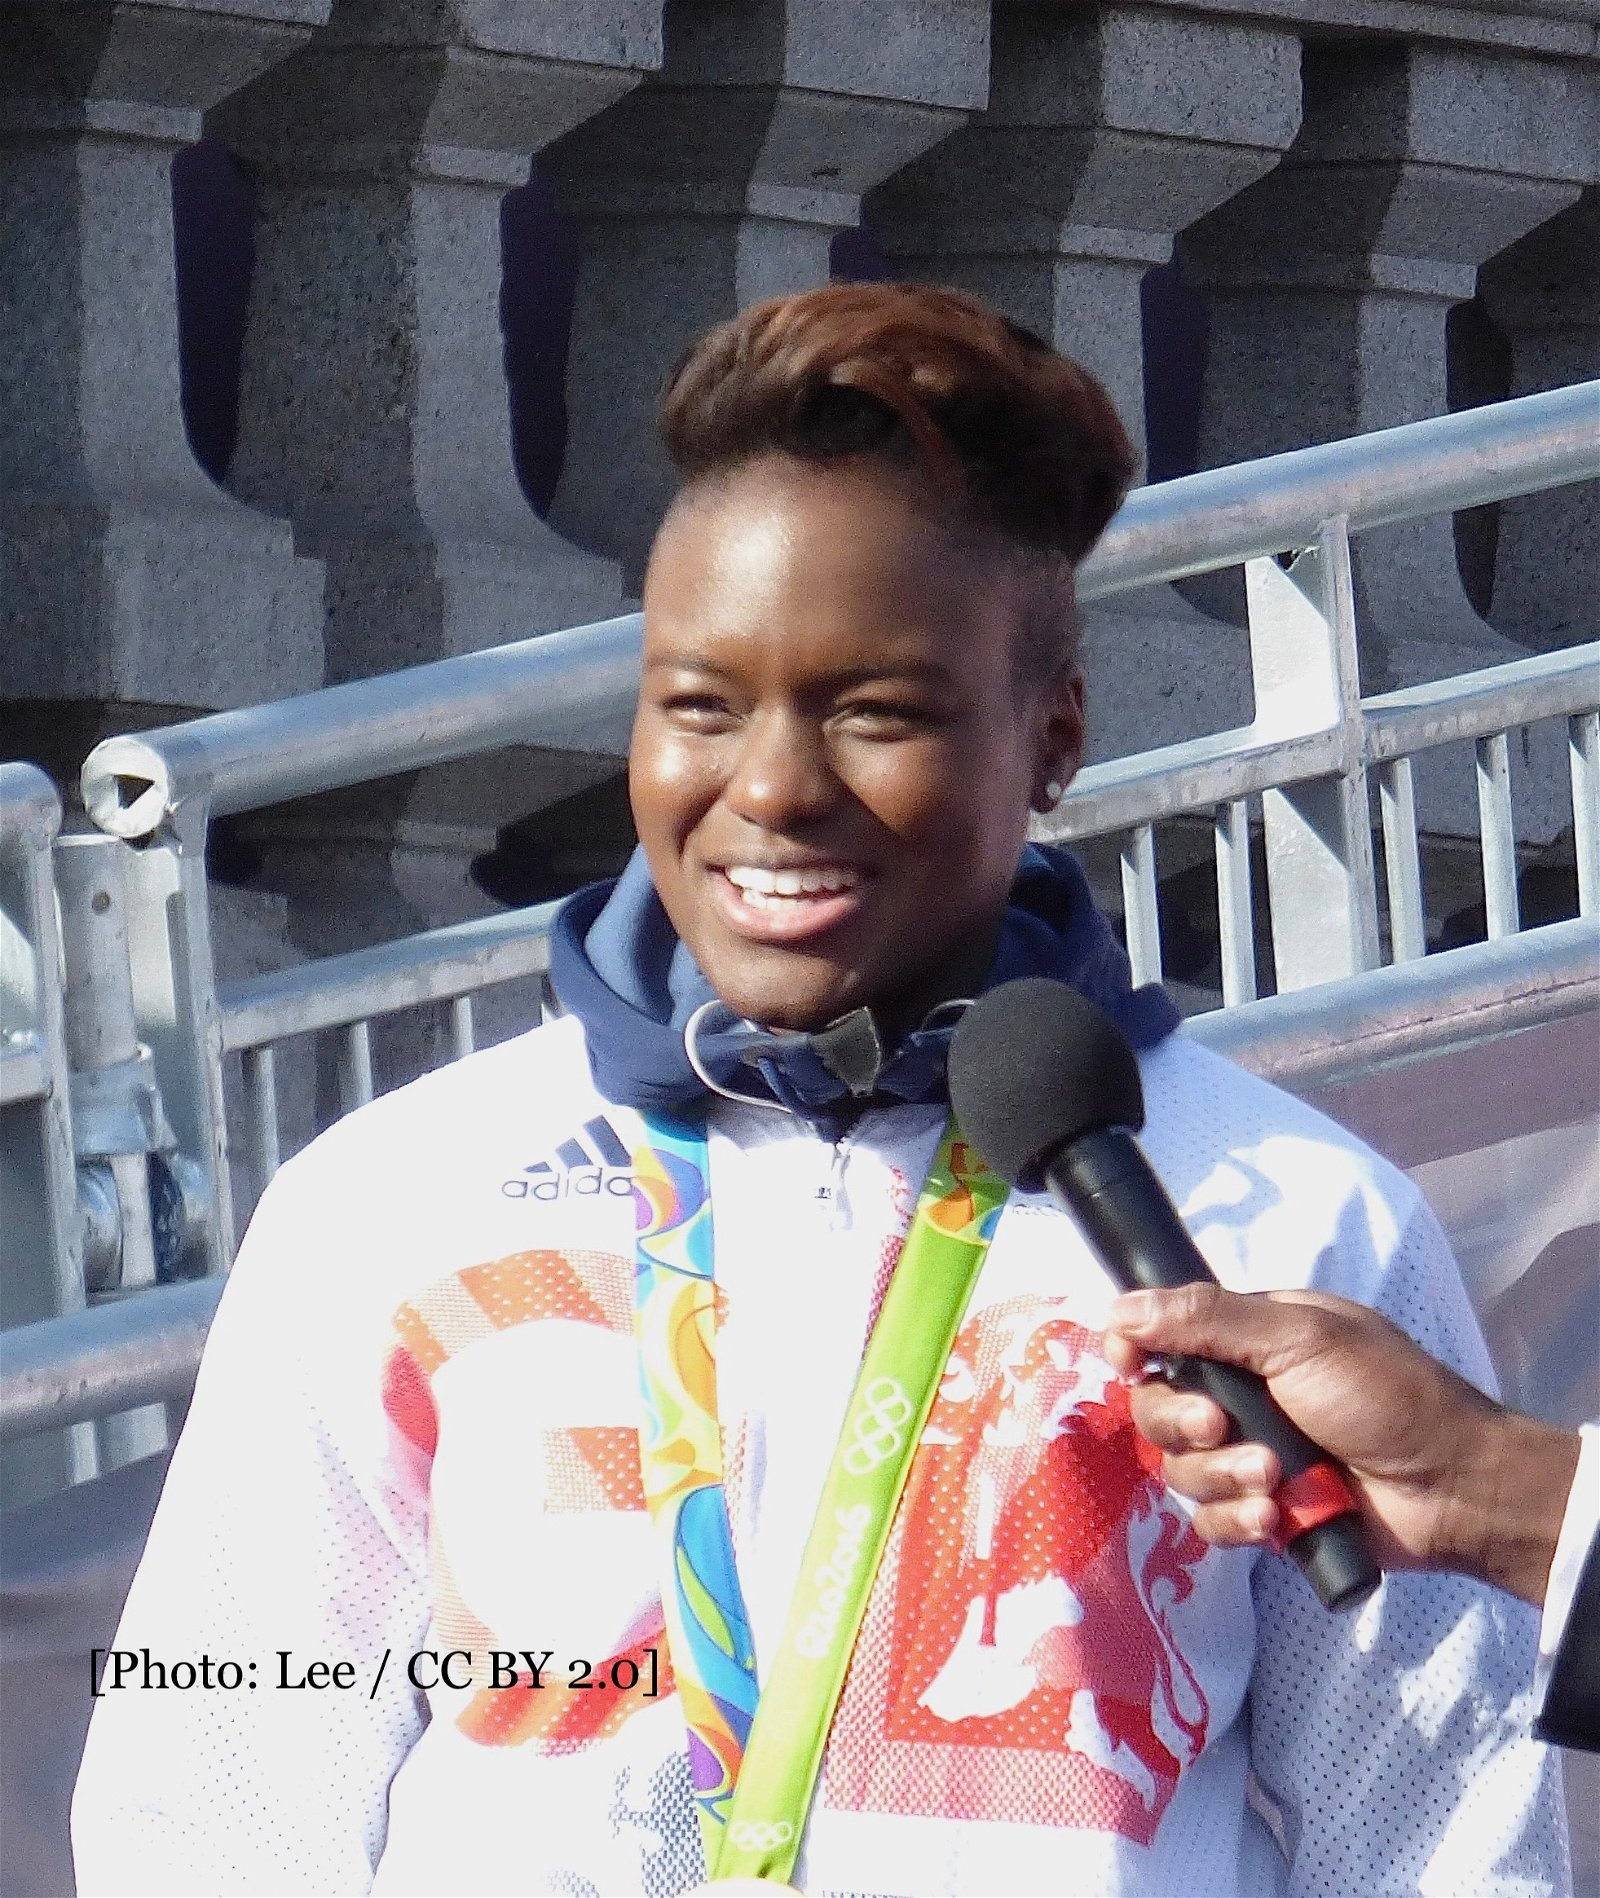 Nicola Adams at an event